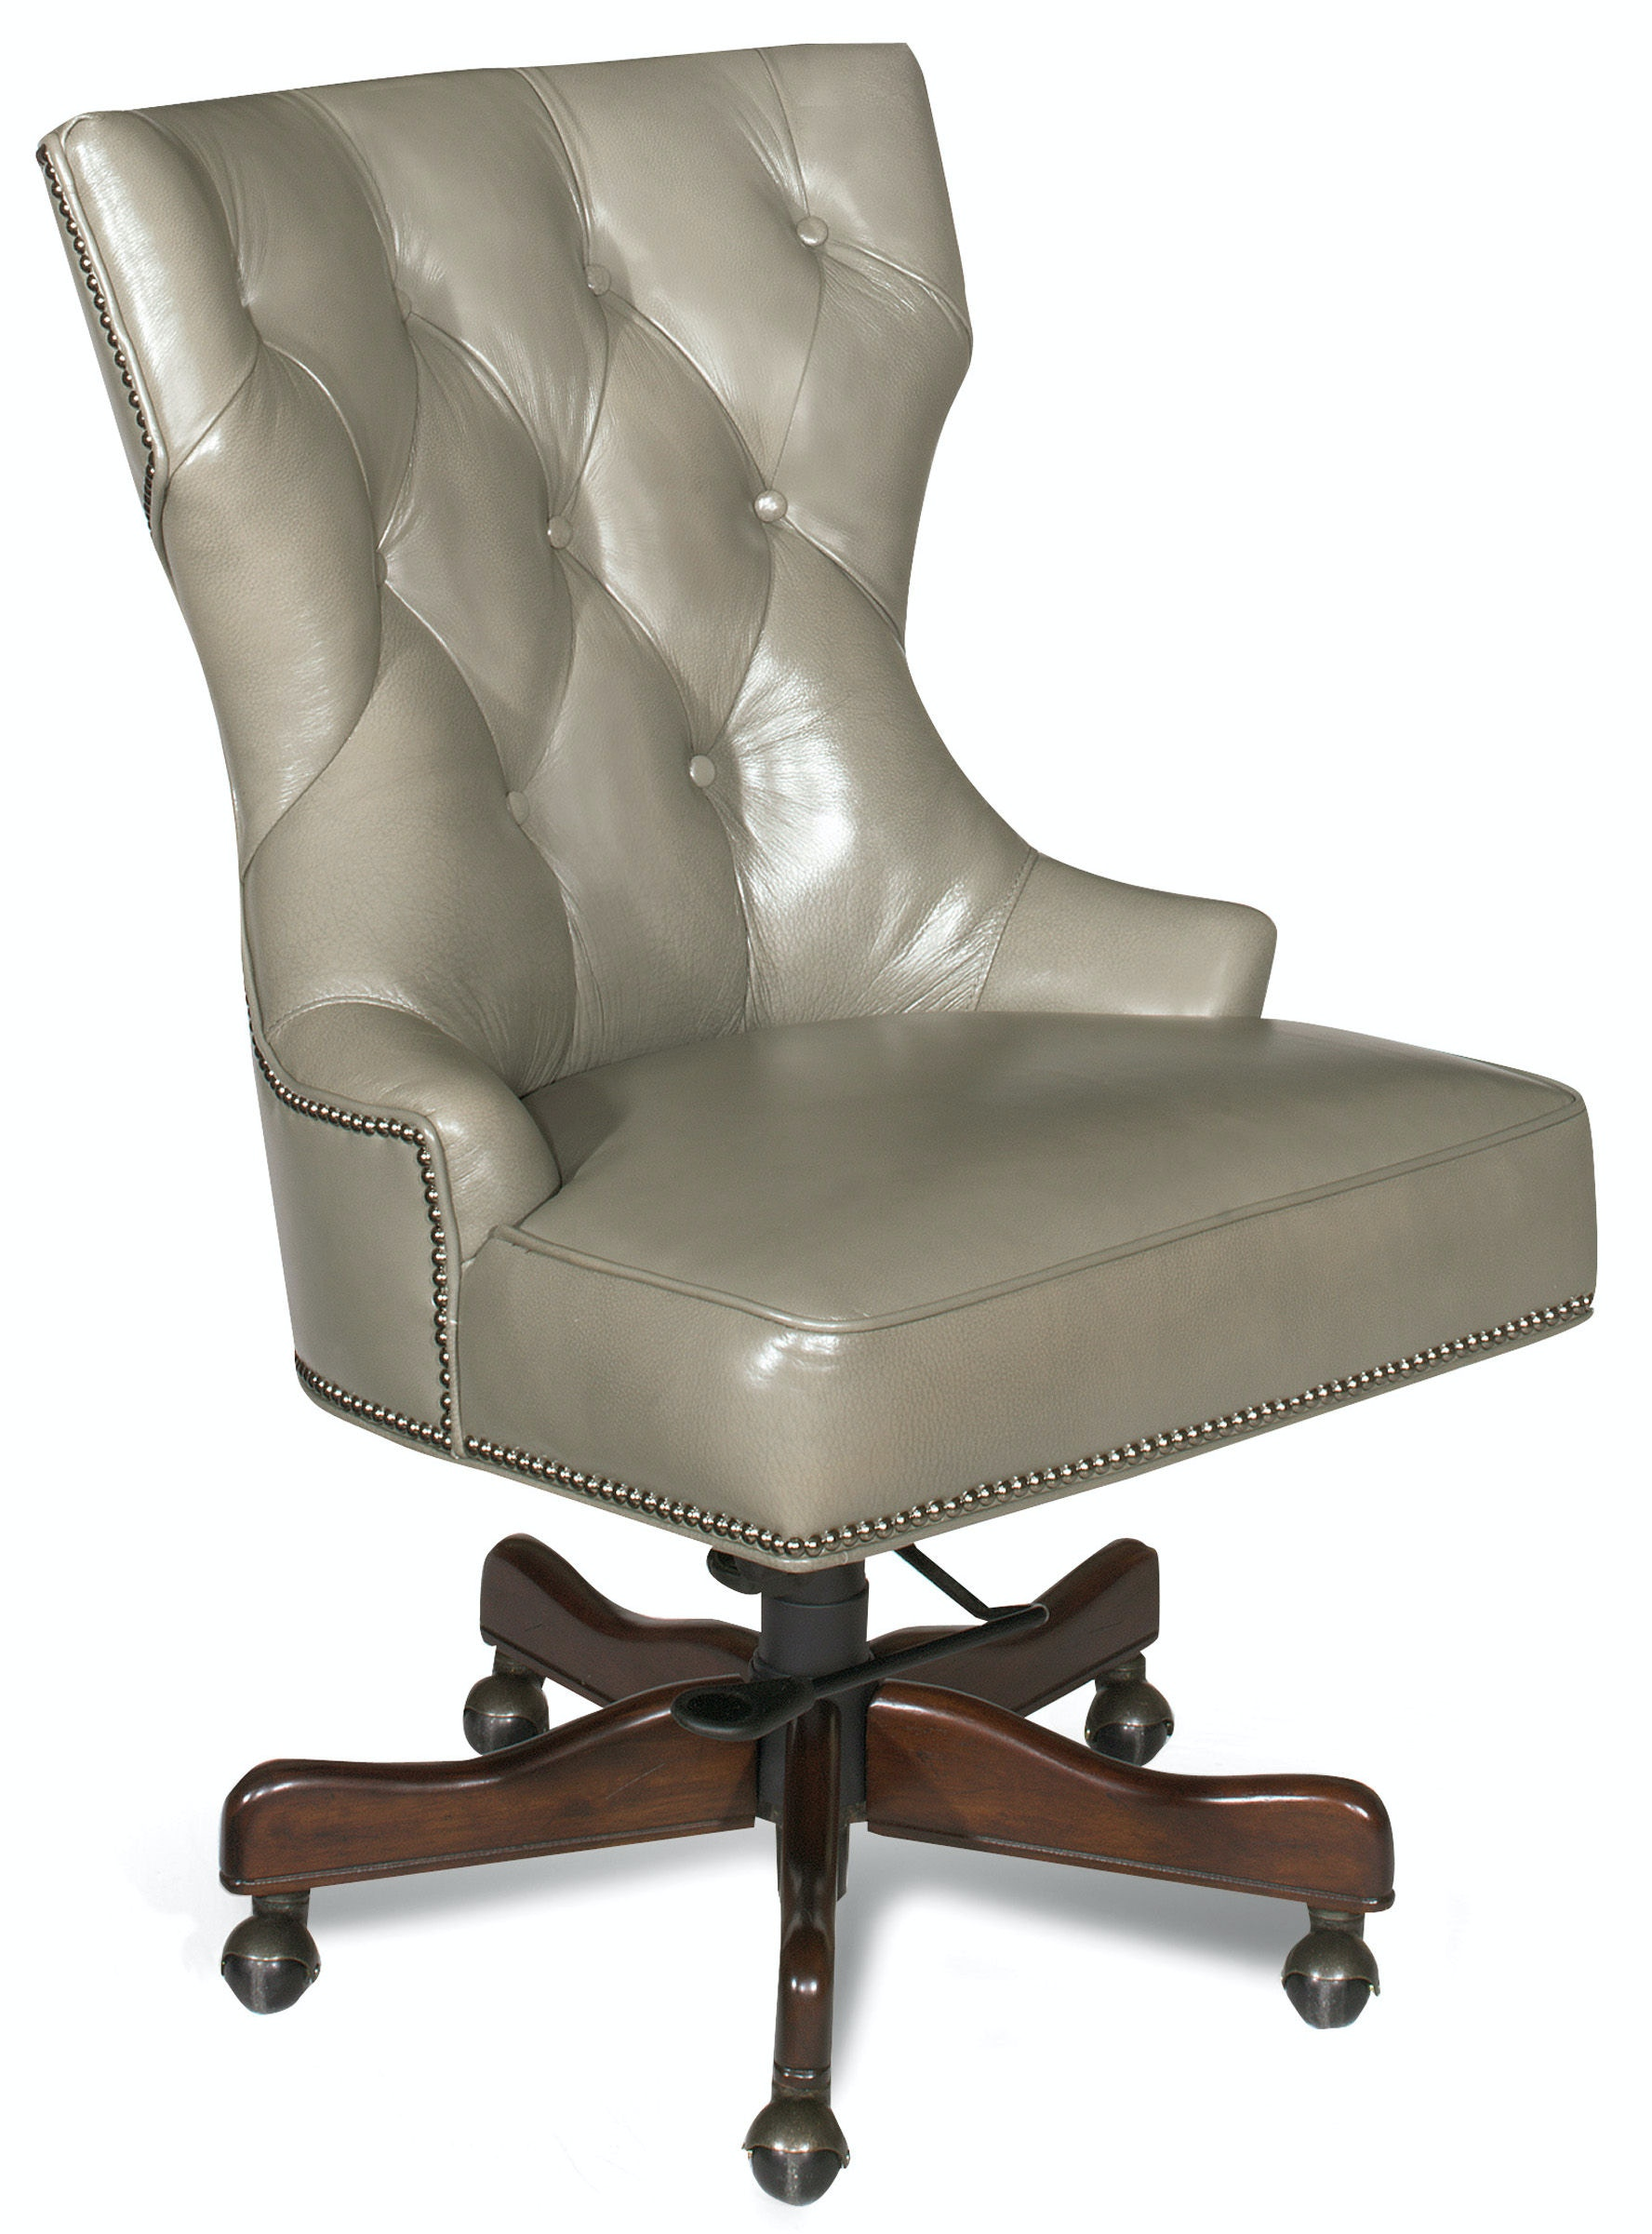 hooker desk chair blue wingback with ottoman furniture home office primm ec379 096